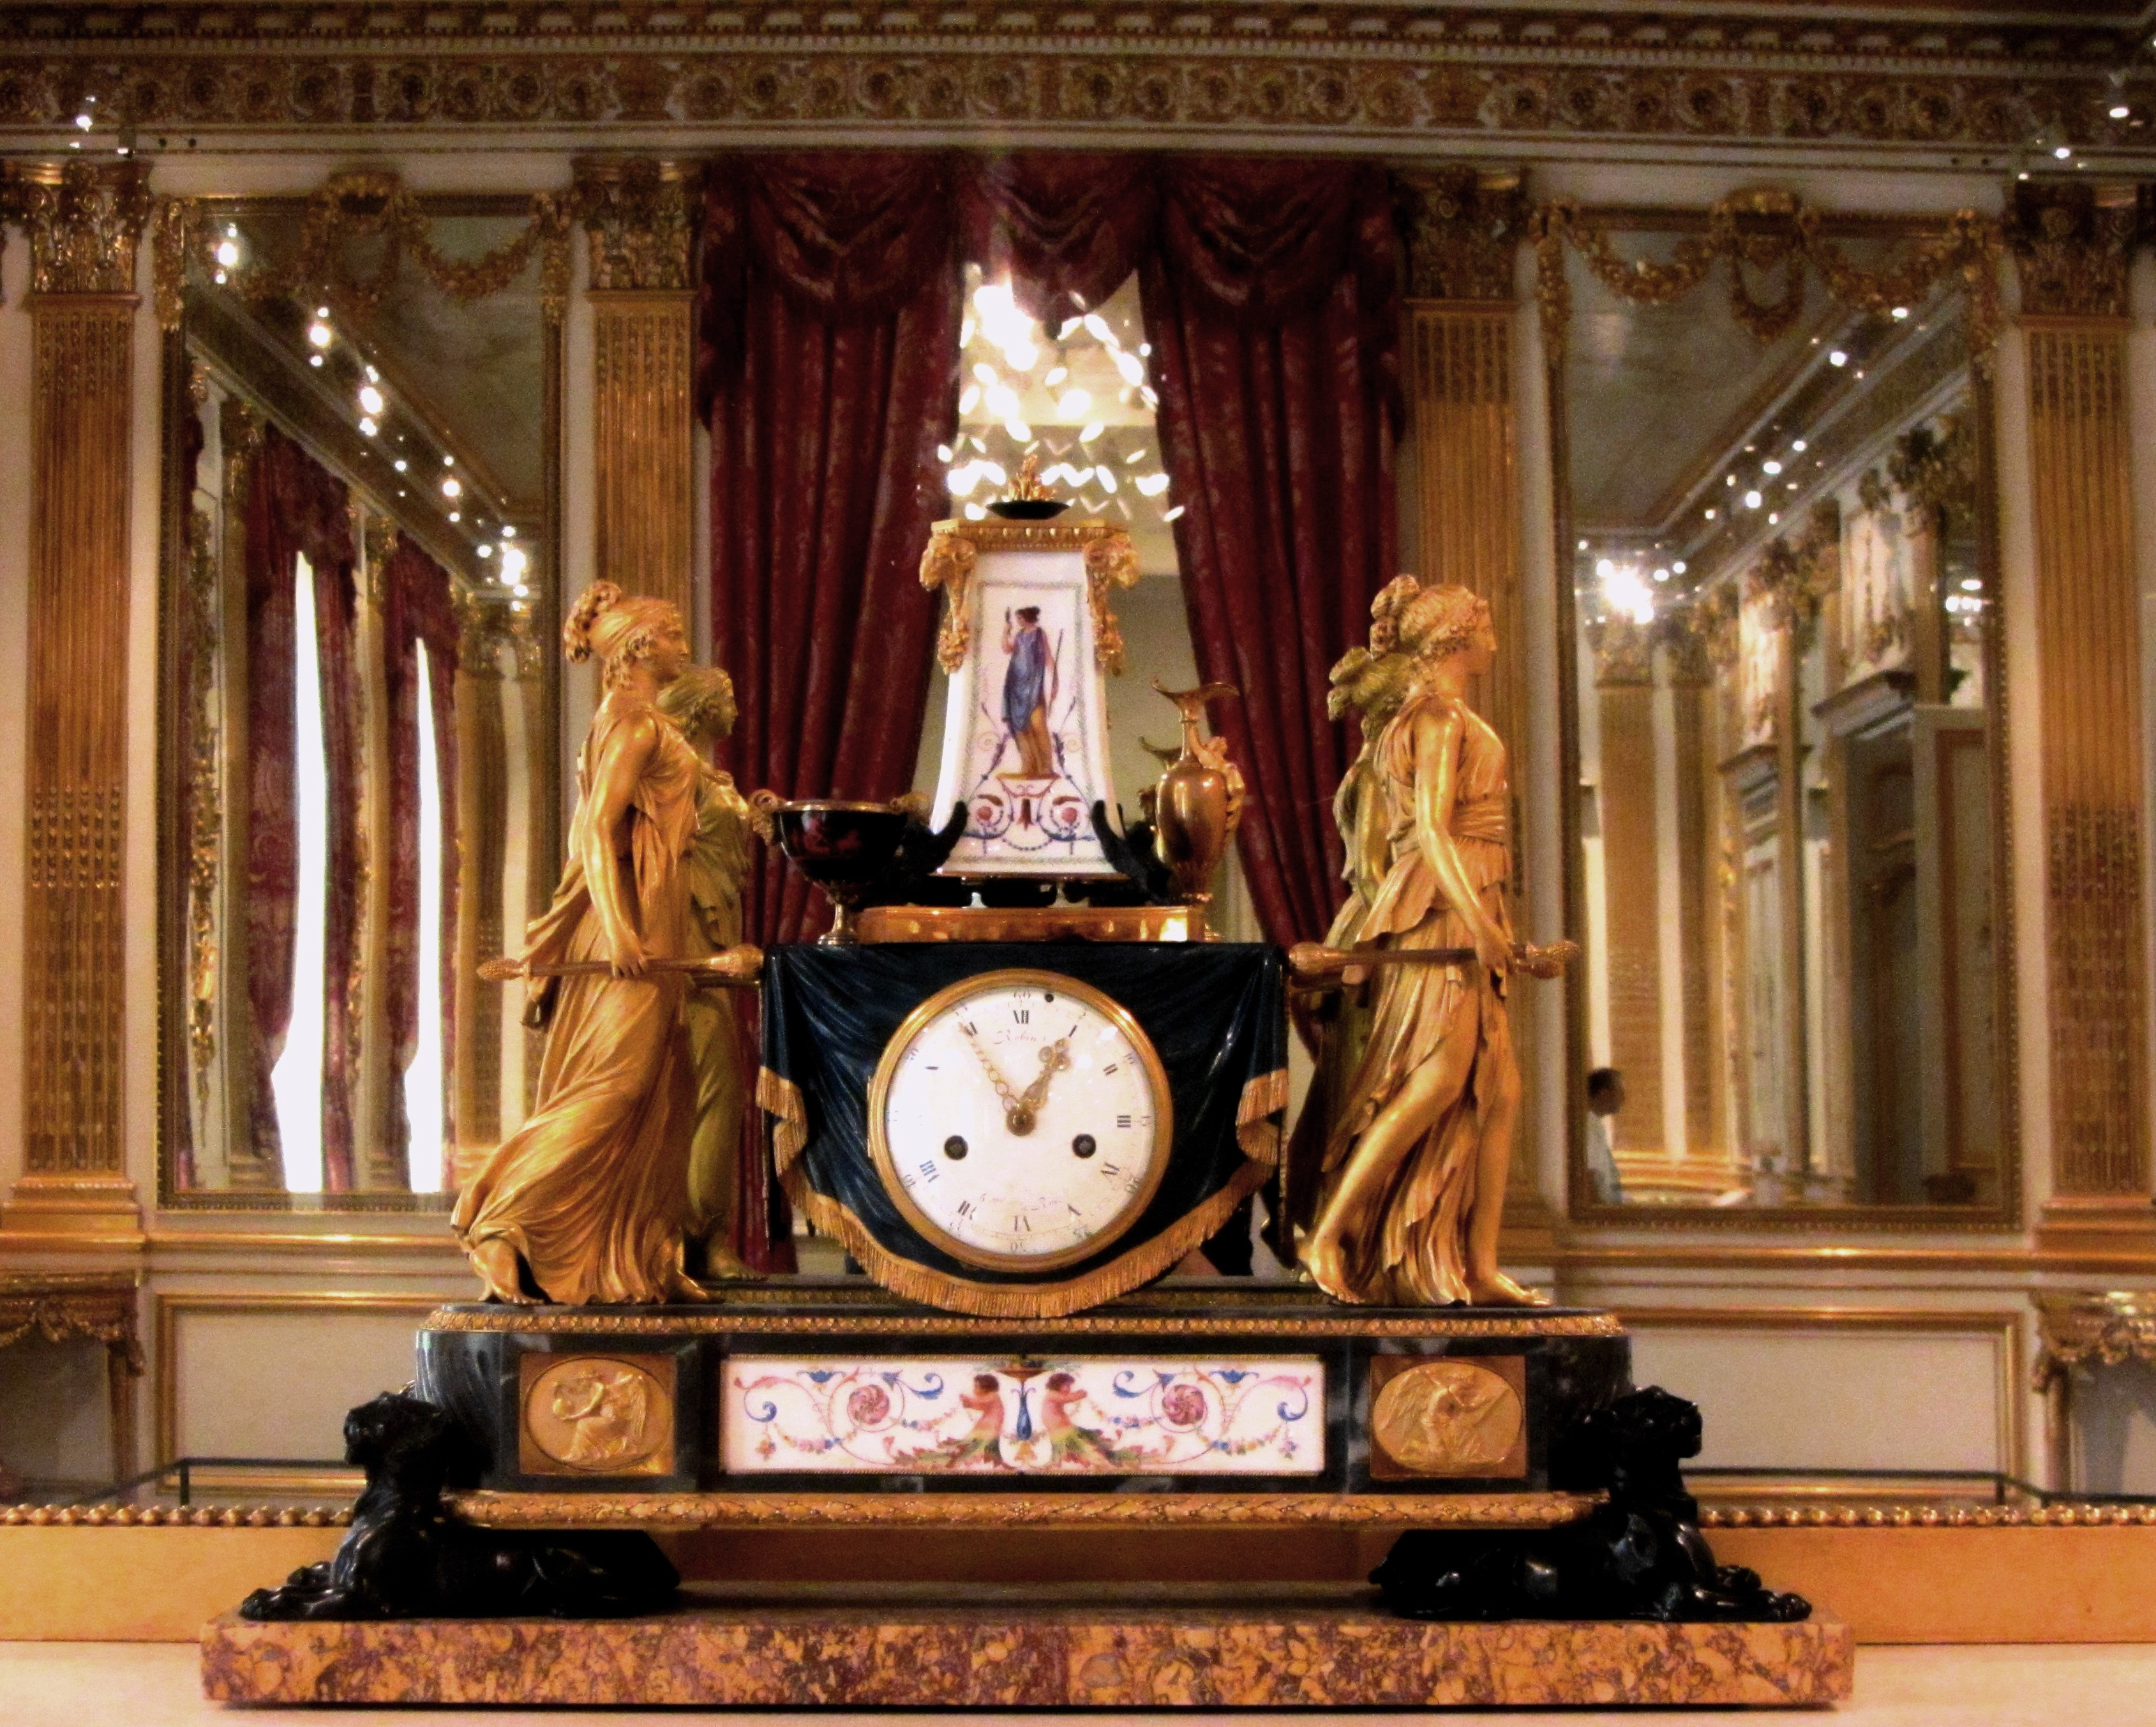 This clock came from Queen Marie-Antoinette's private sitting room at the Tuileries Palace, Paris; photographed on display at the Corocoran Gallery of Art, Washington, DC, September 2013.